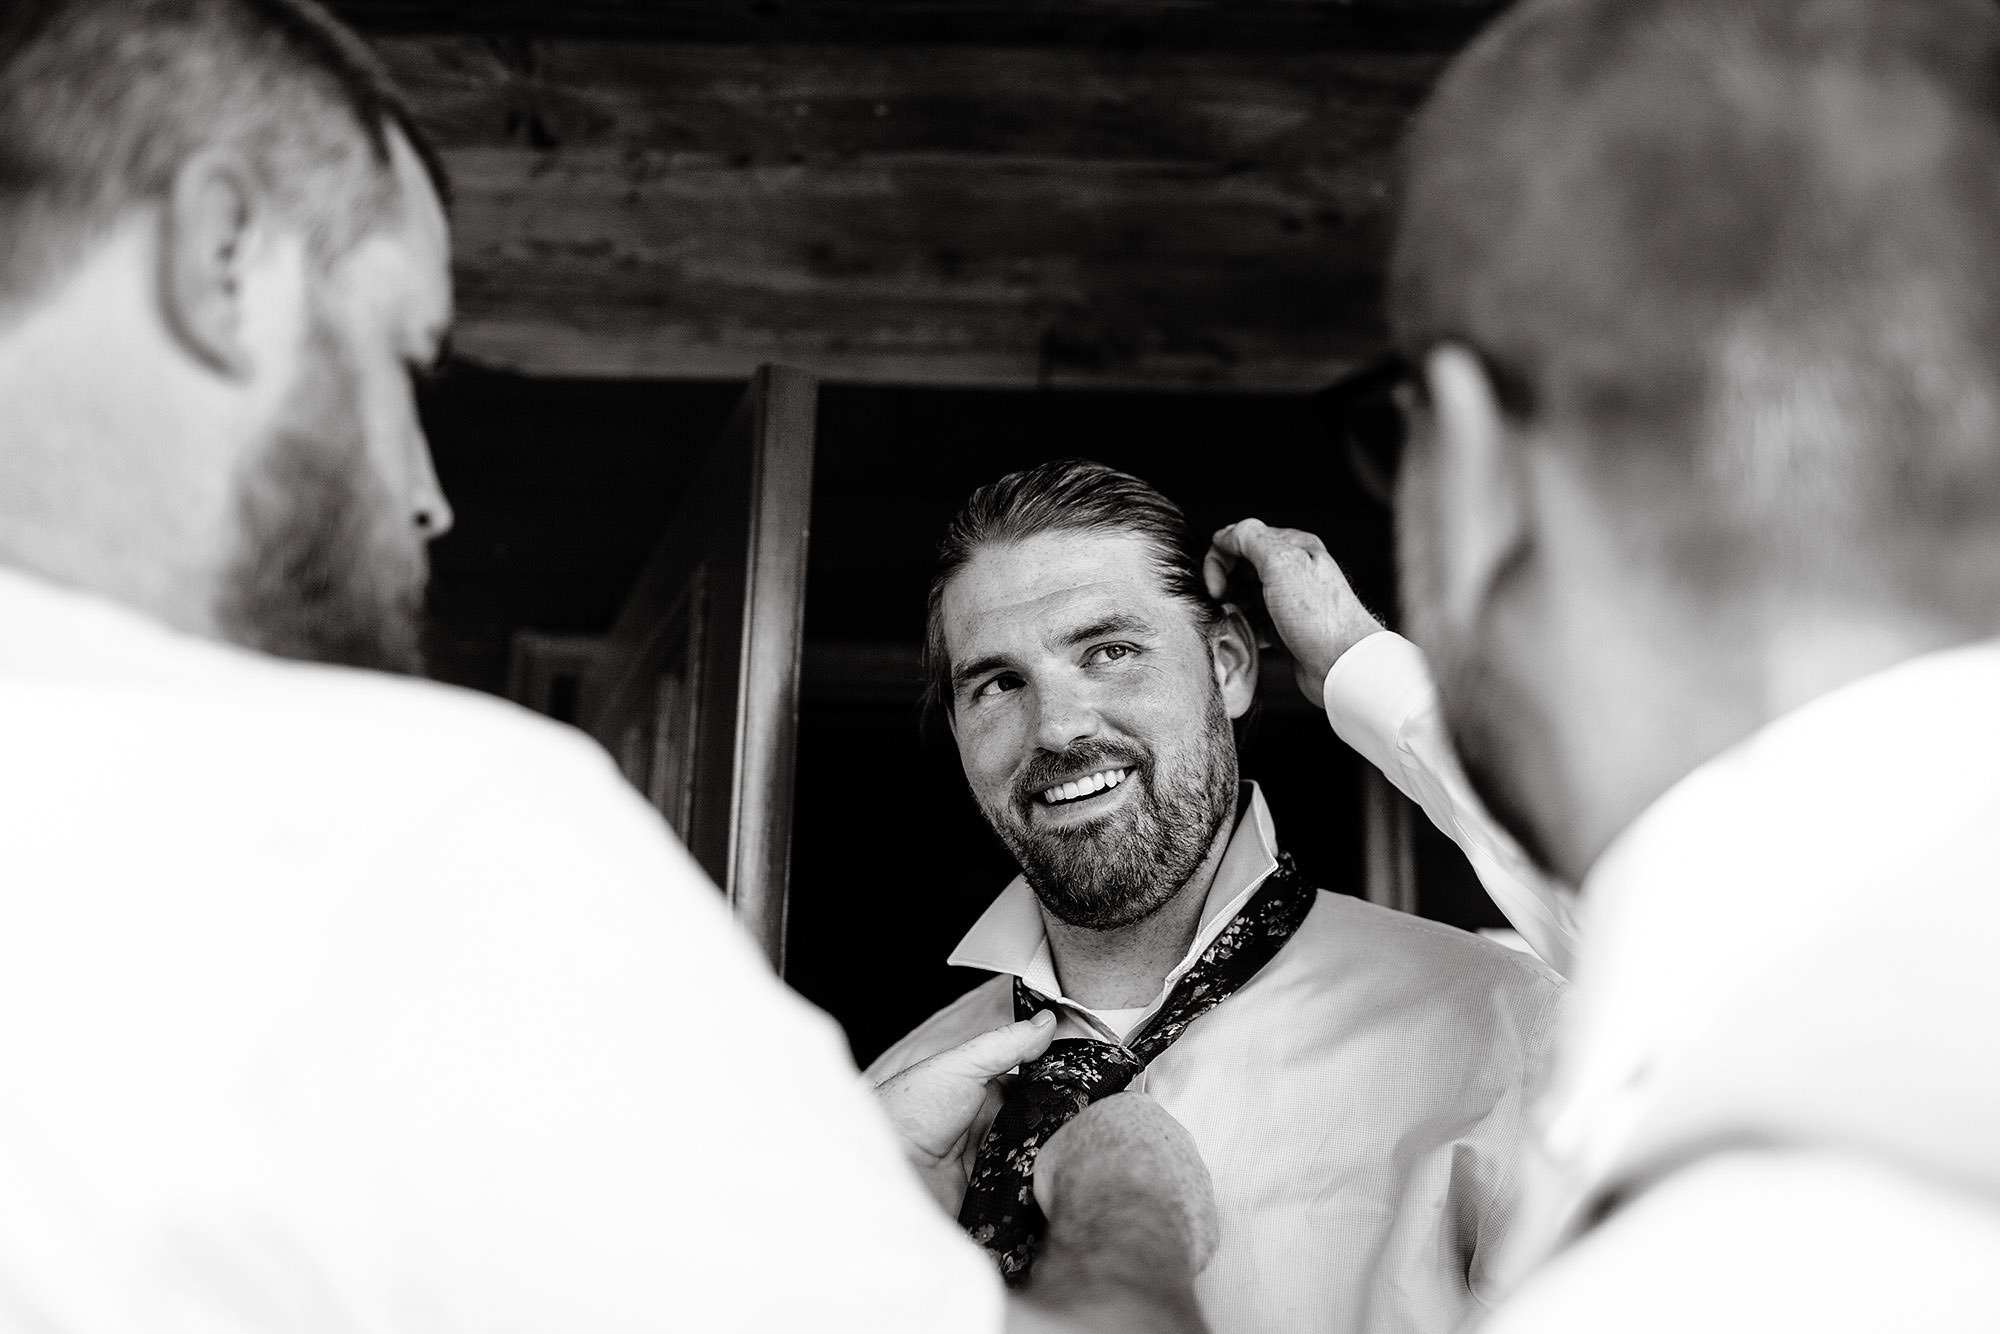 The groom gets ready prior to the ceremony at Hulbert Outdoor Center.